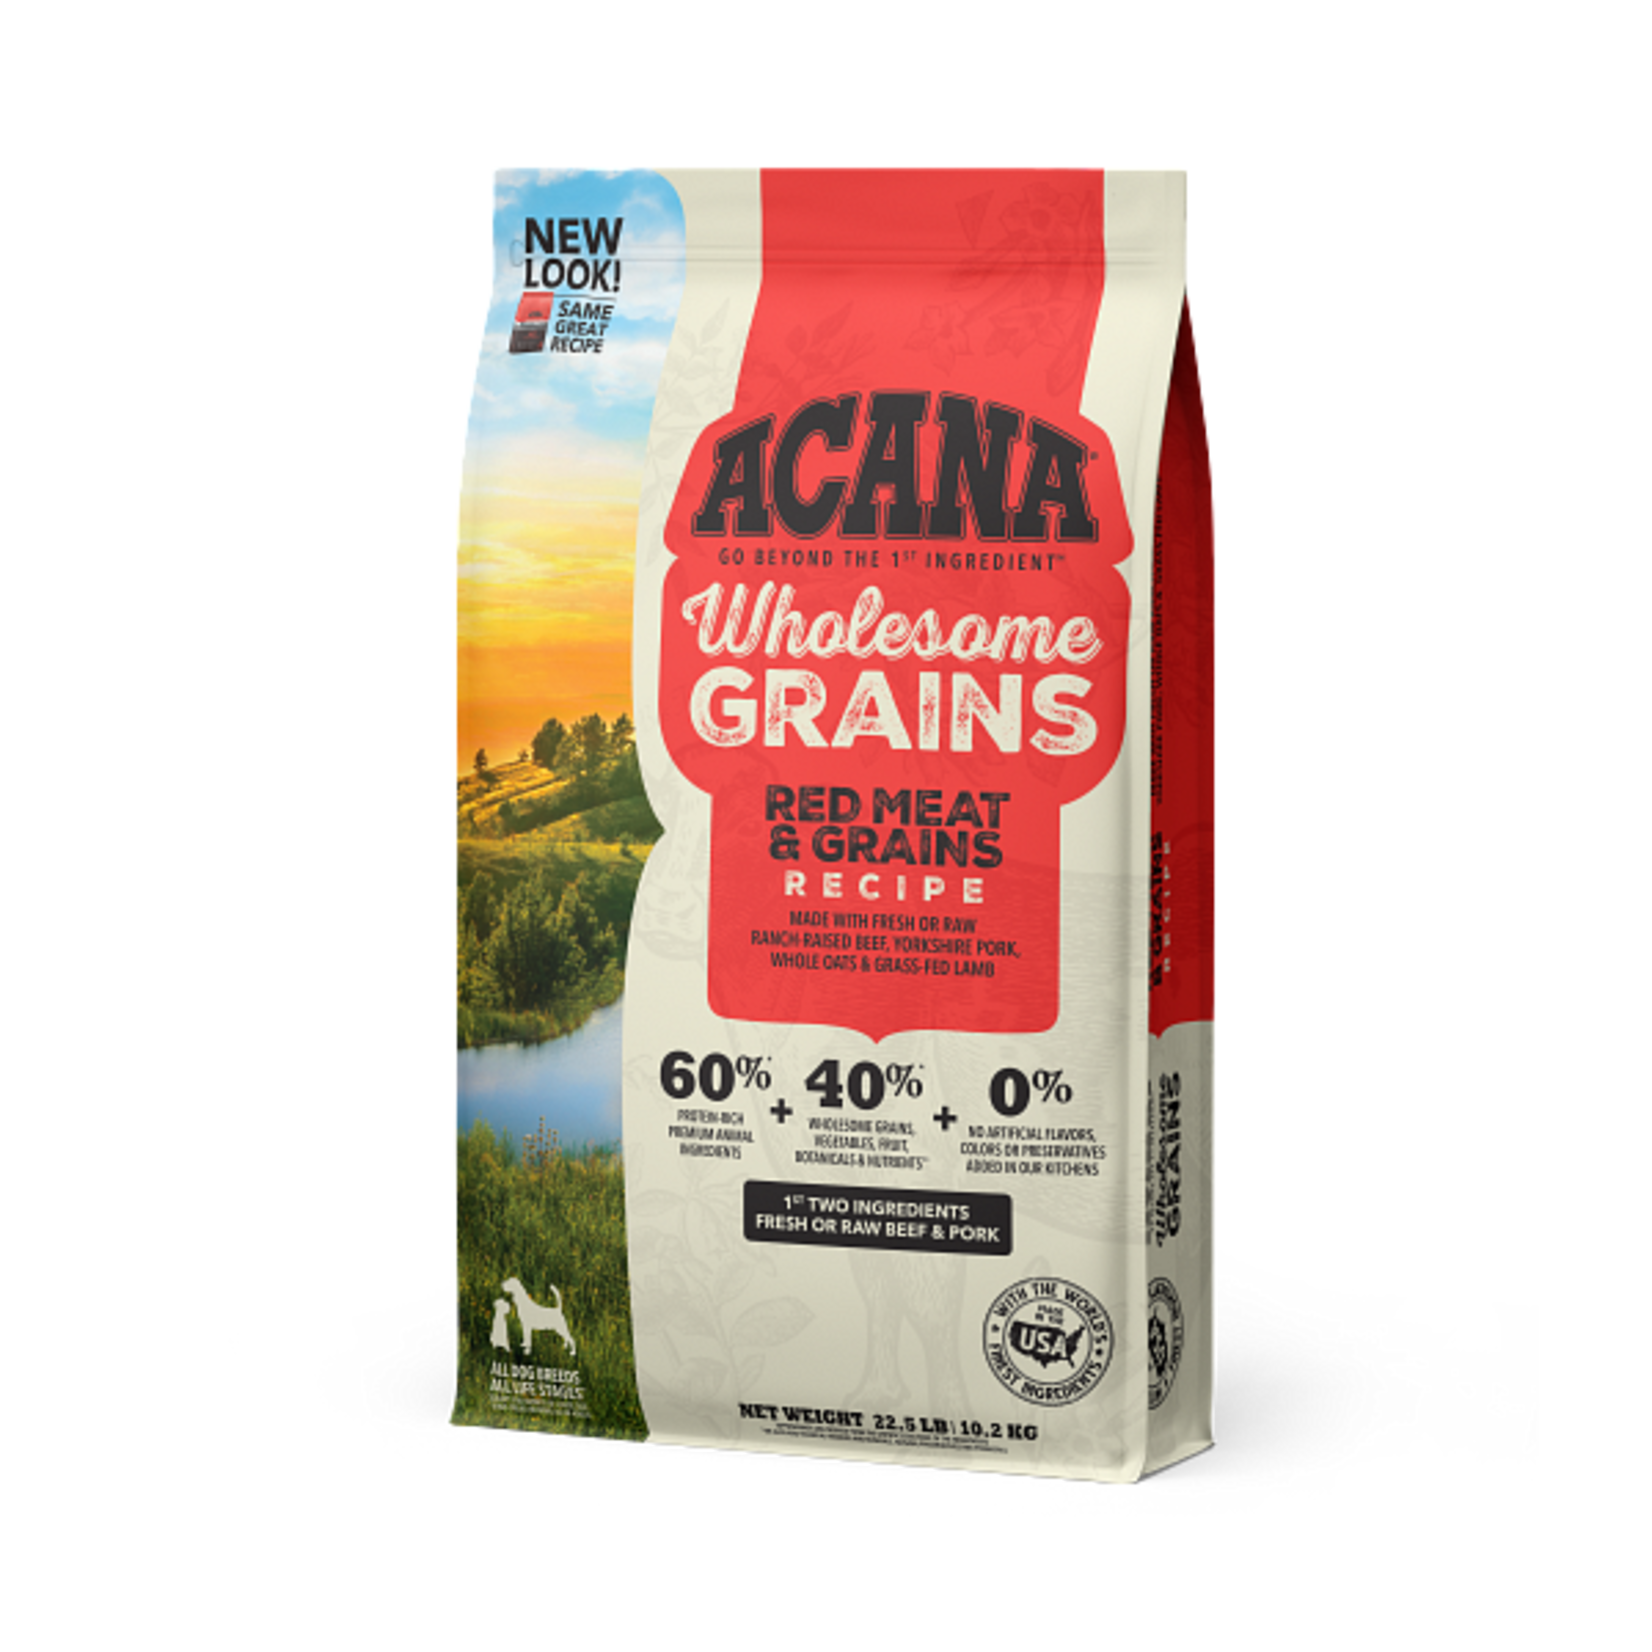 Champion Pet Foods Acana Dog Wholesome Grains Red Meats 11.5#